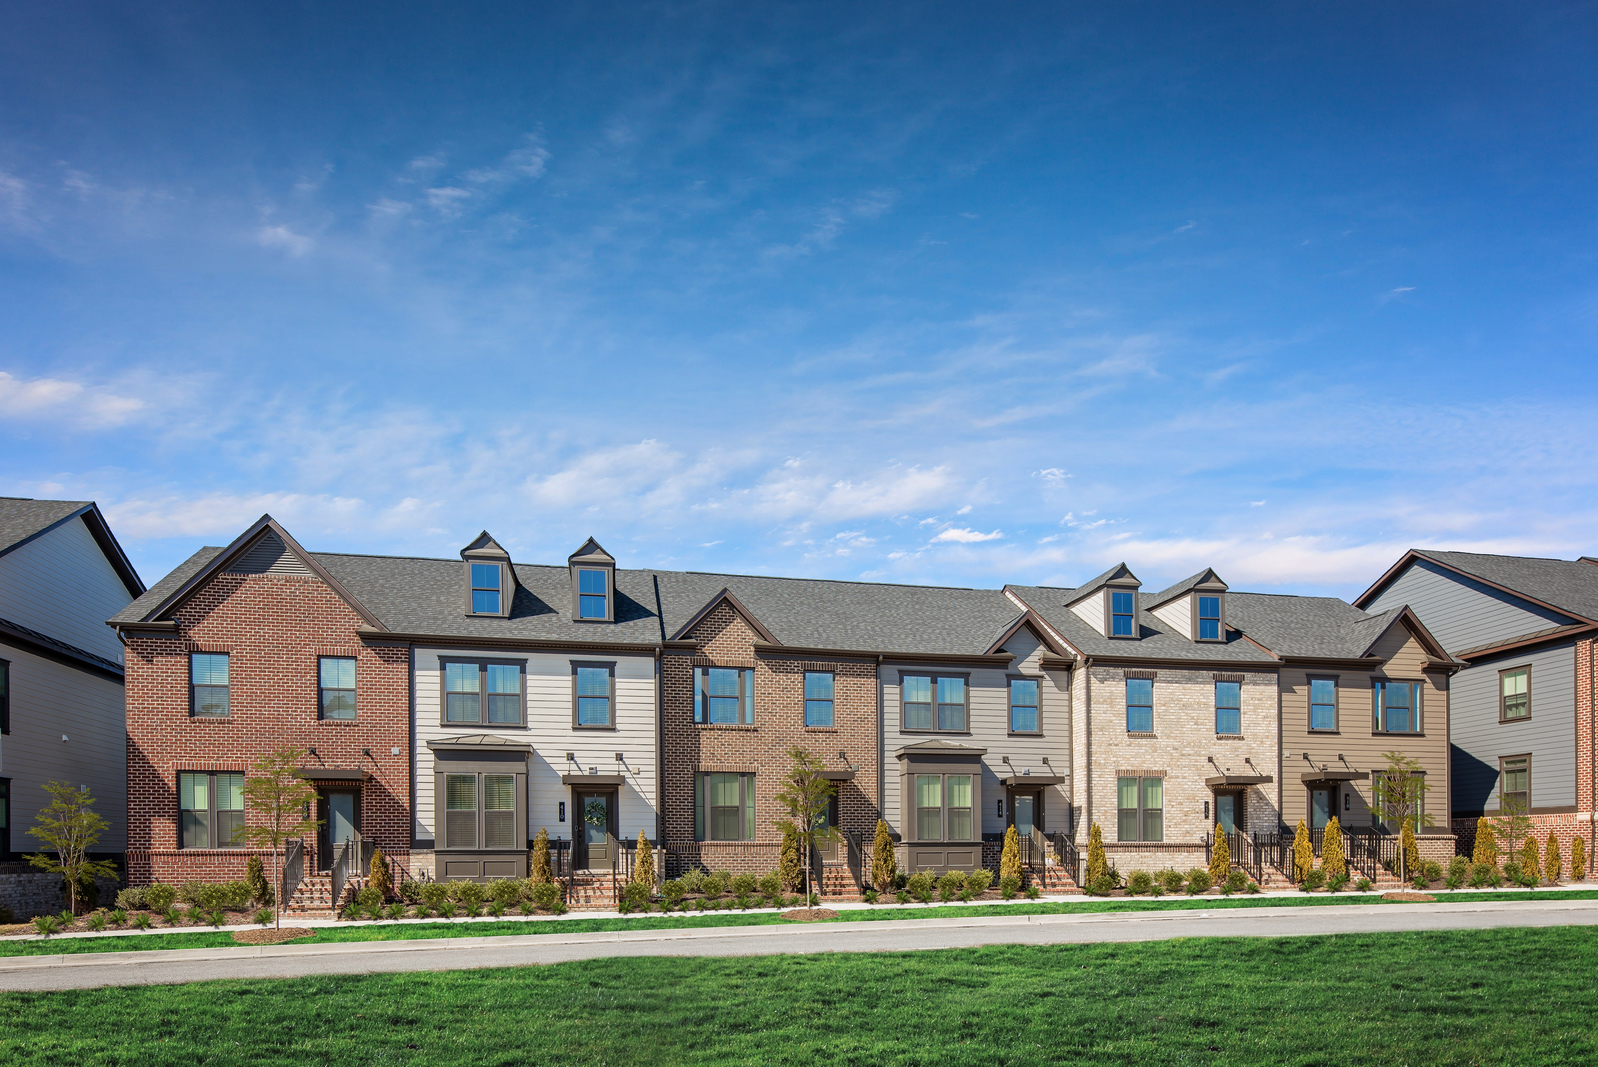 Swell New Homes For Sale At Greenleigh Townhomes In Baltimore Md Beutiful Home Inspiration Aditmahrainfo